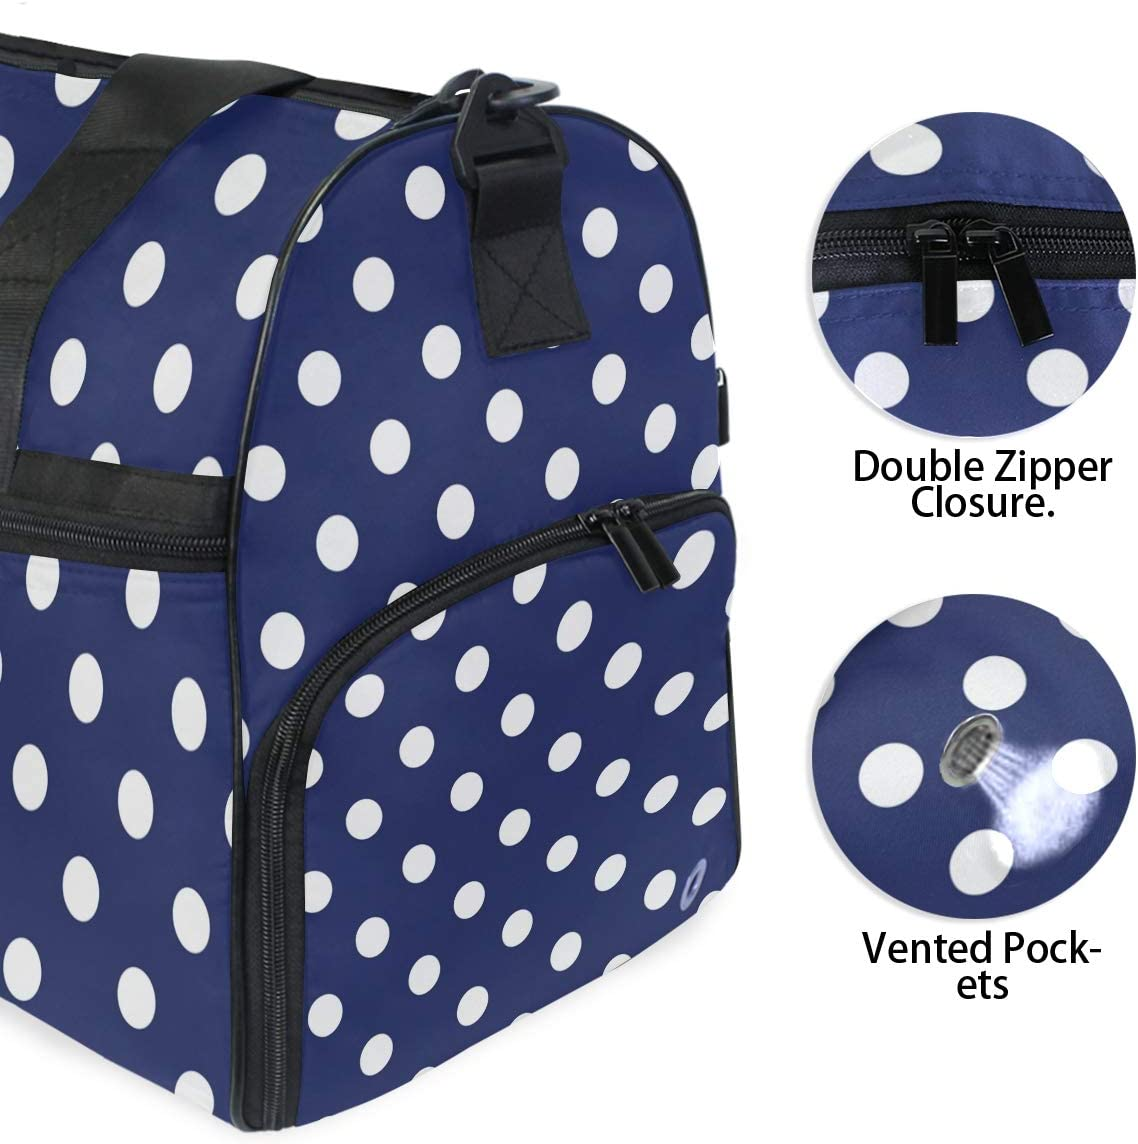 ALAZA Blue White Polka Dots Sports Gym Duffel Bag Travel Luggage Handbag Shoulder Bag with Shoes Compartment for Men Women